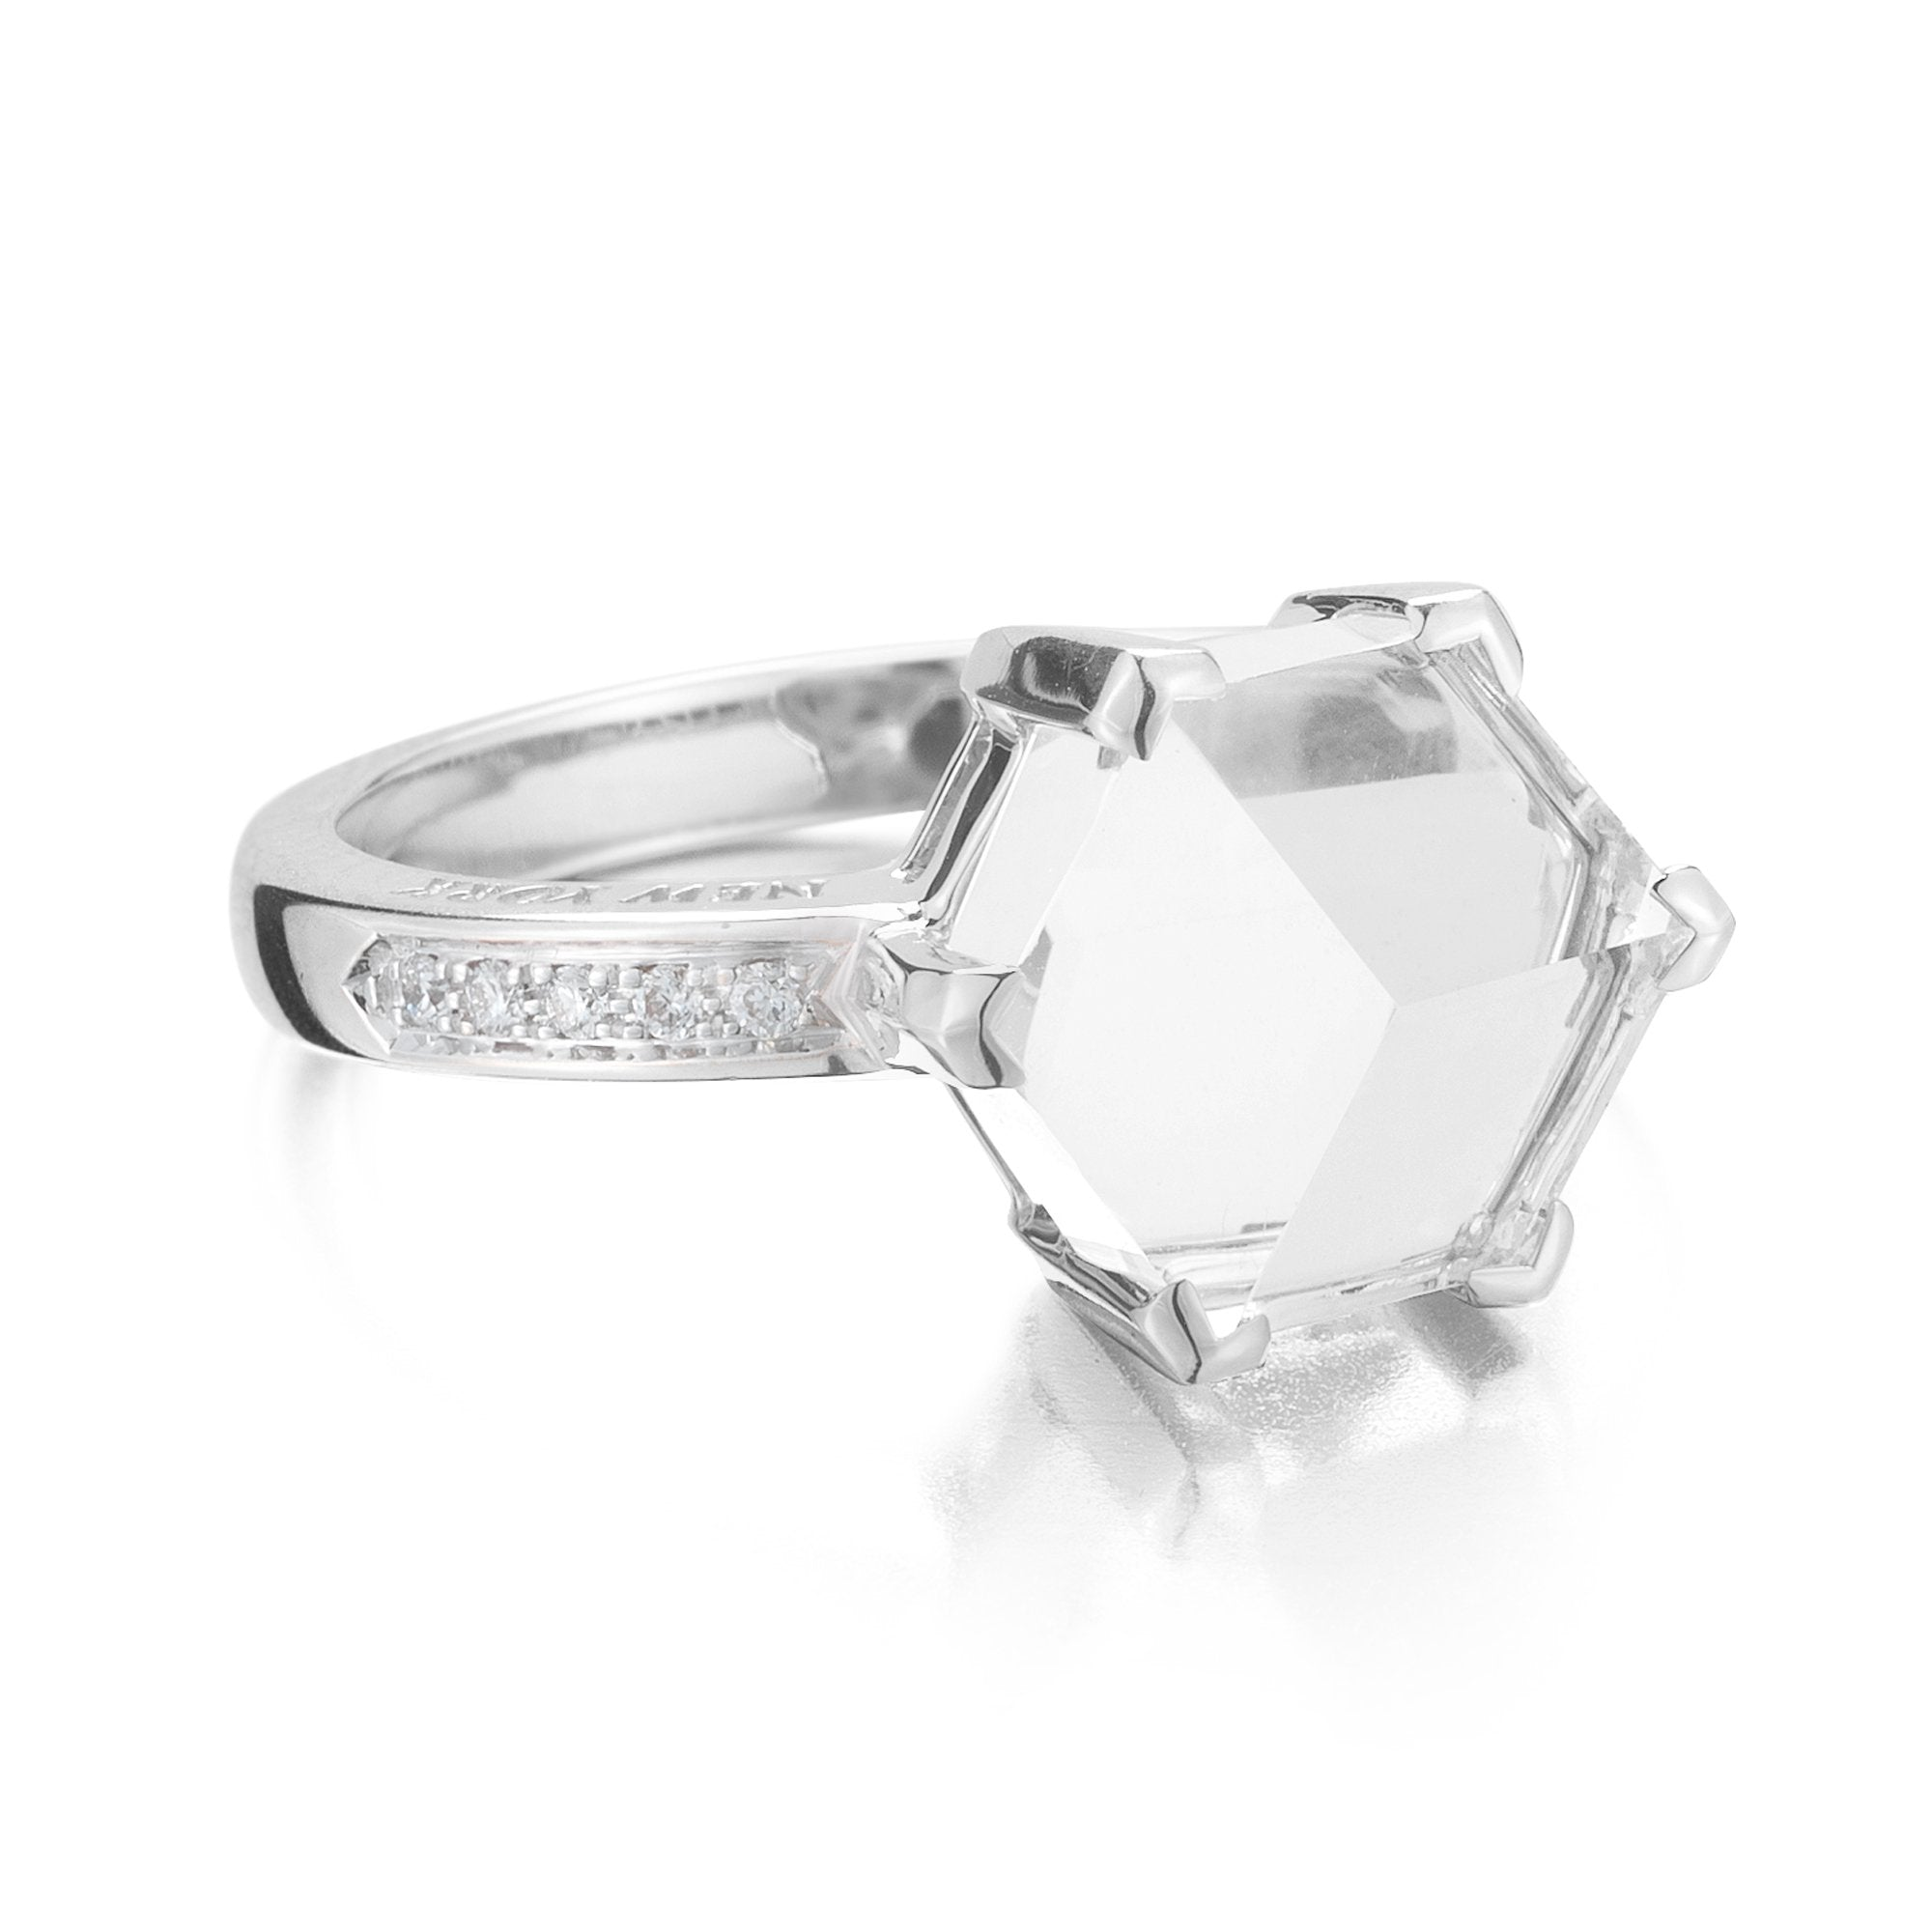 white topaz engagement ring - Paolo Costagli